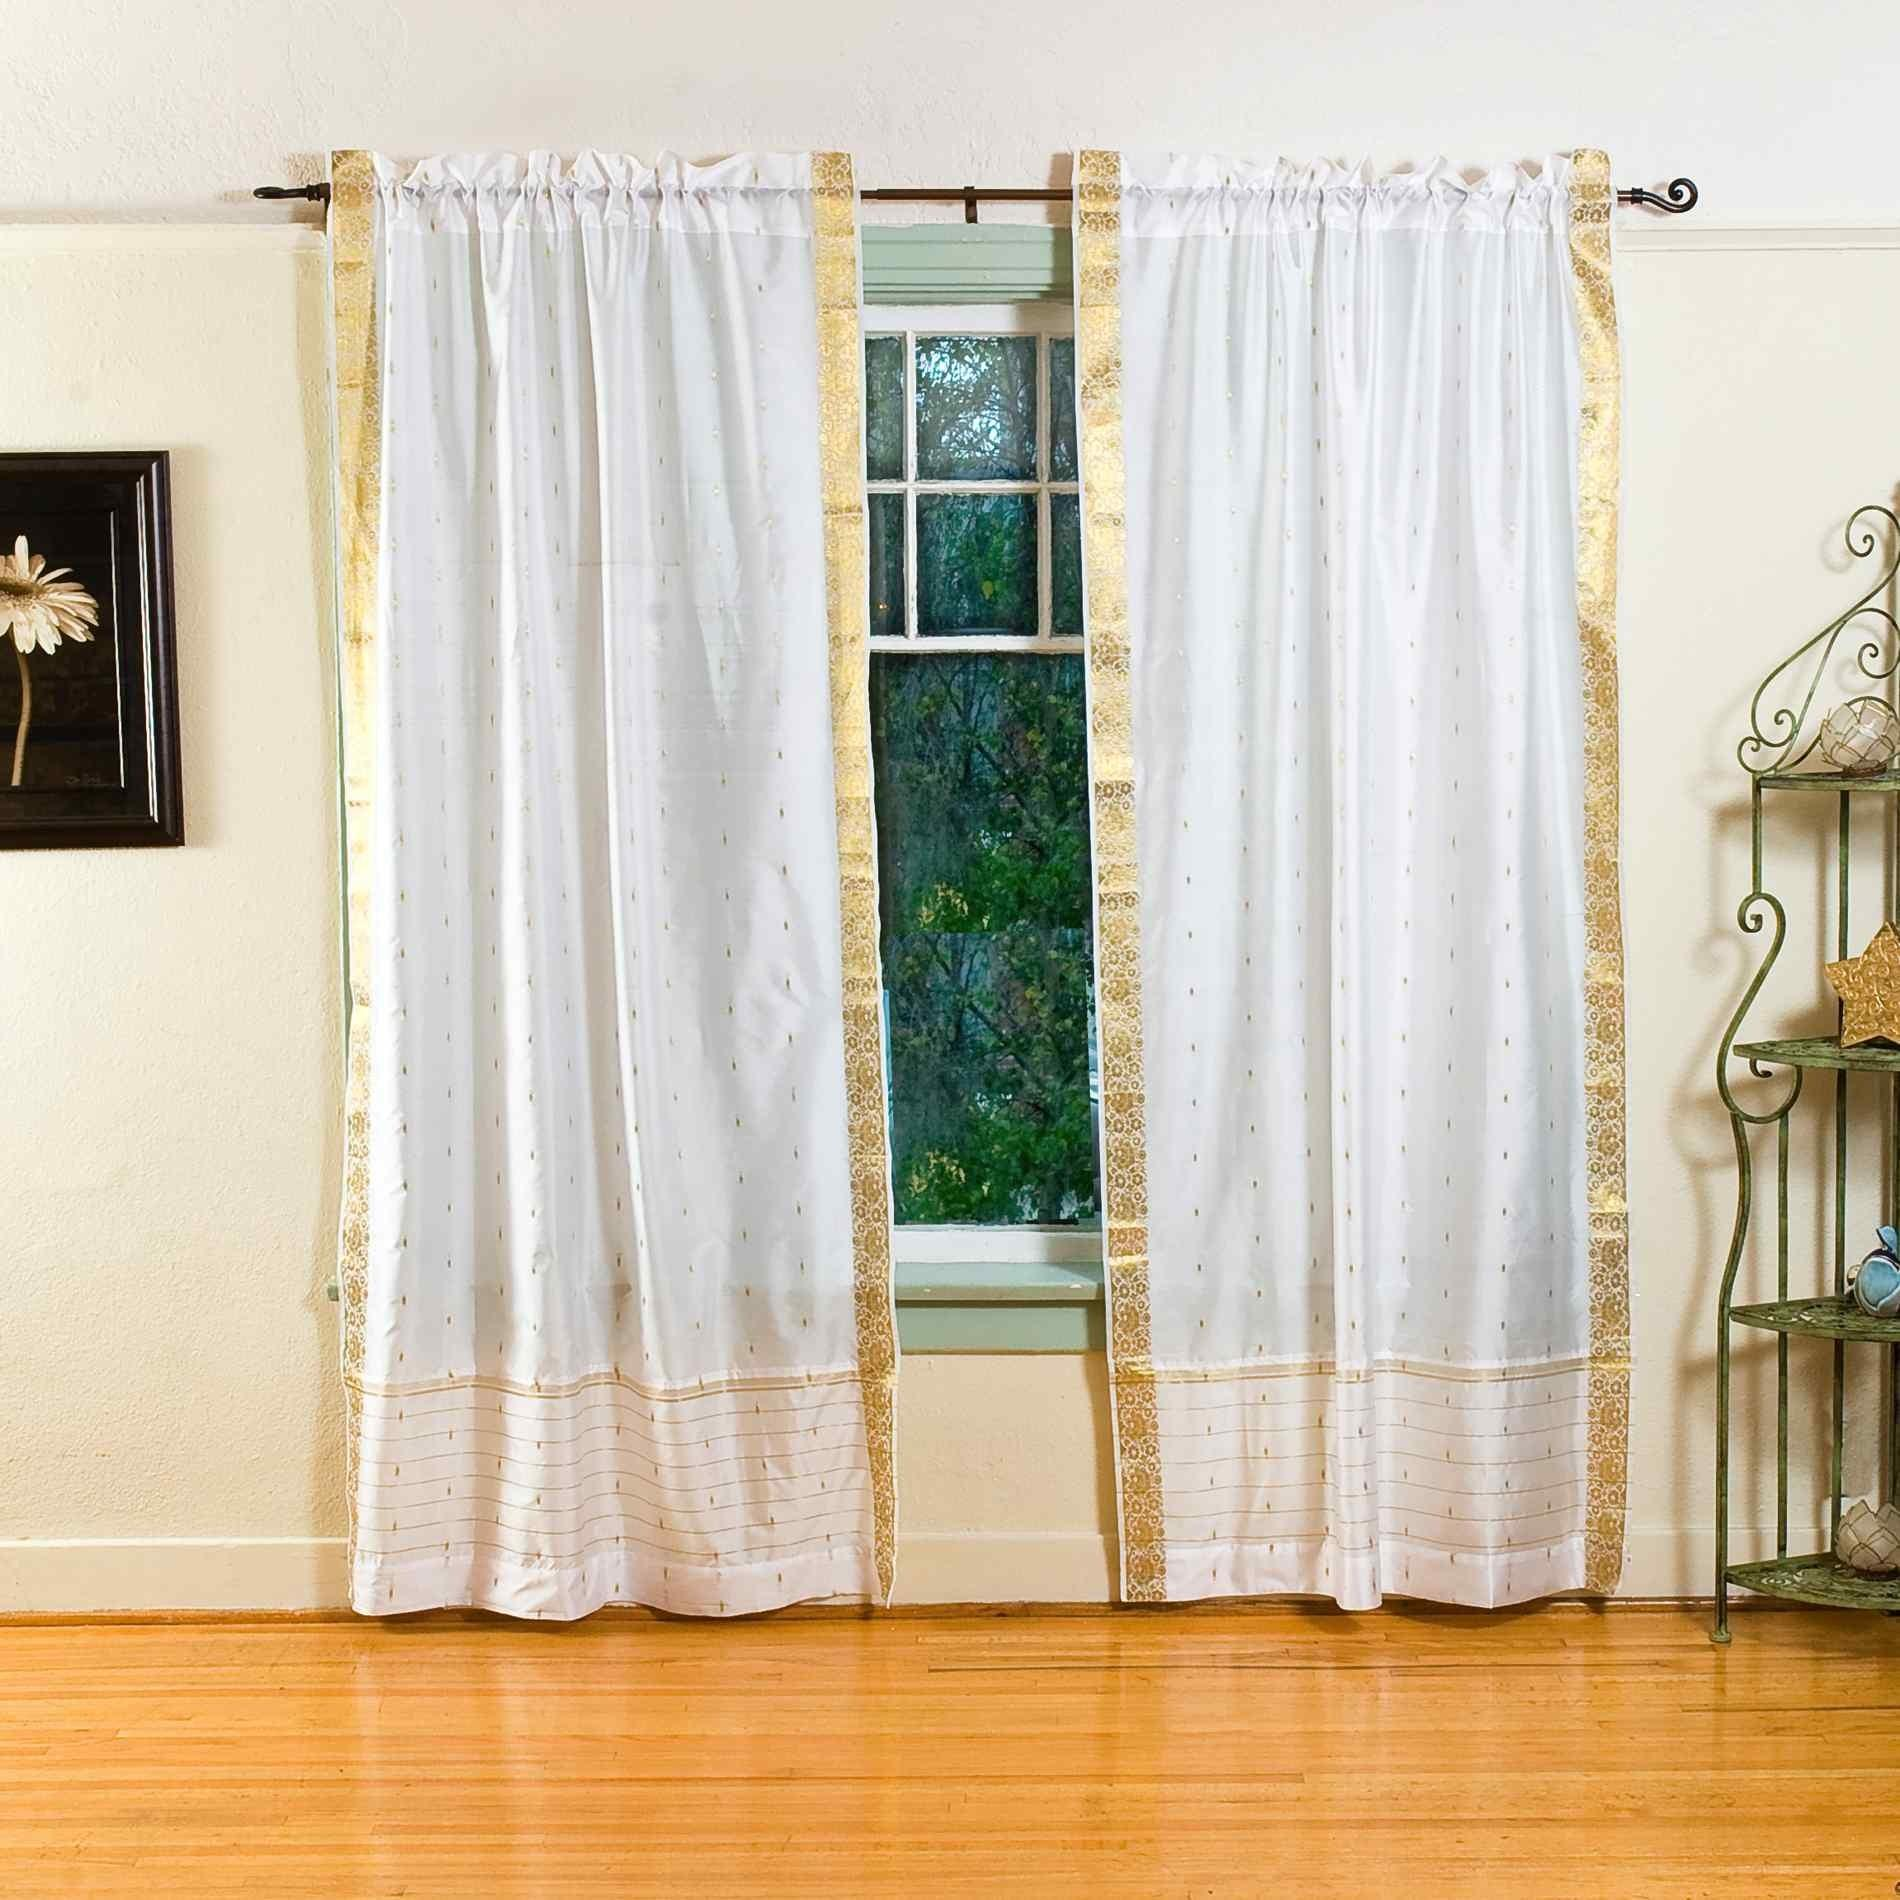 Photos Pair White India Sari Sheer Curtain Drape Panel